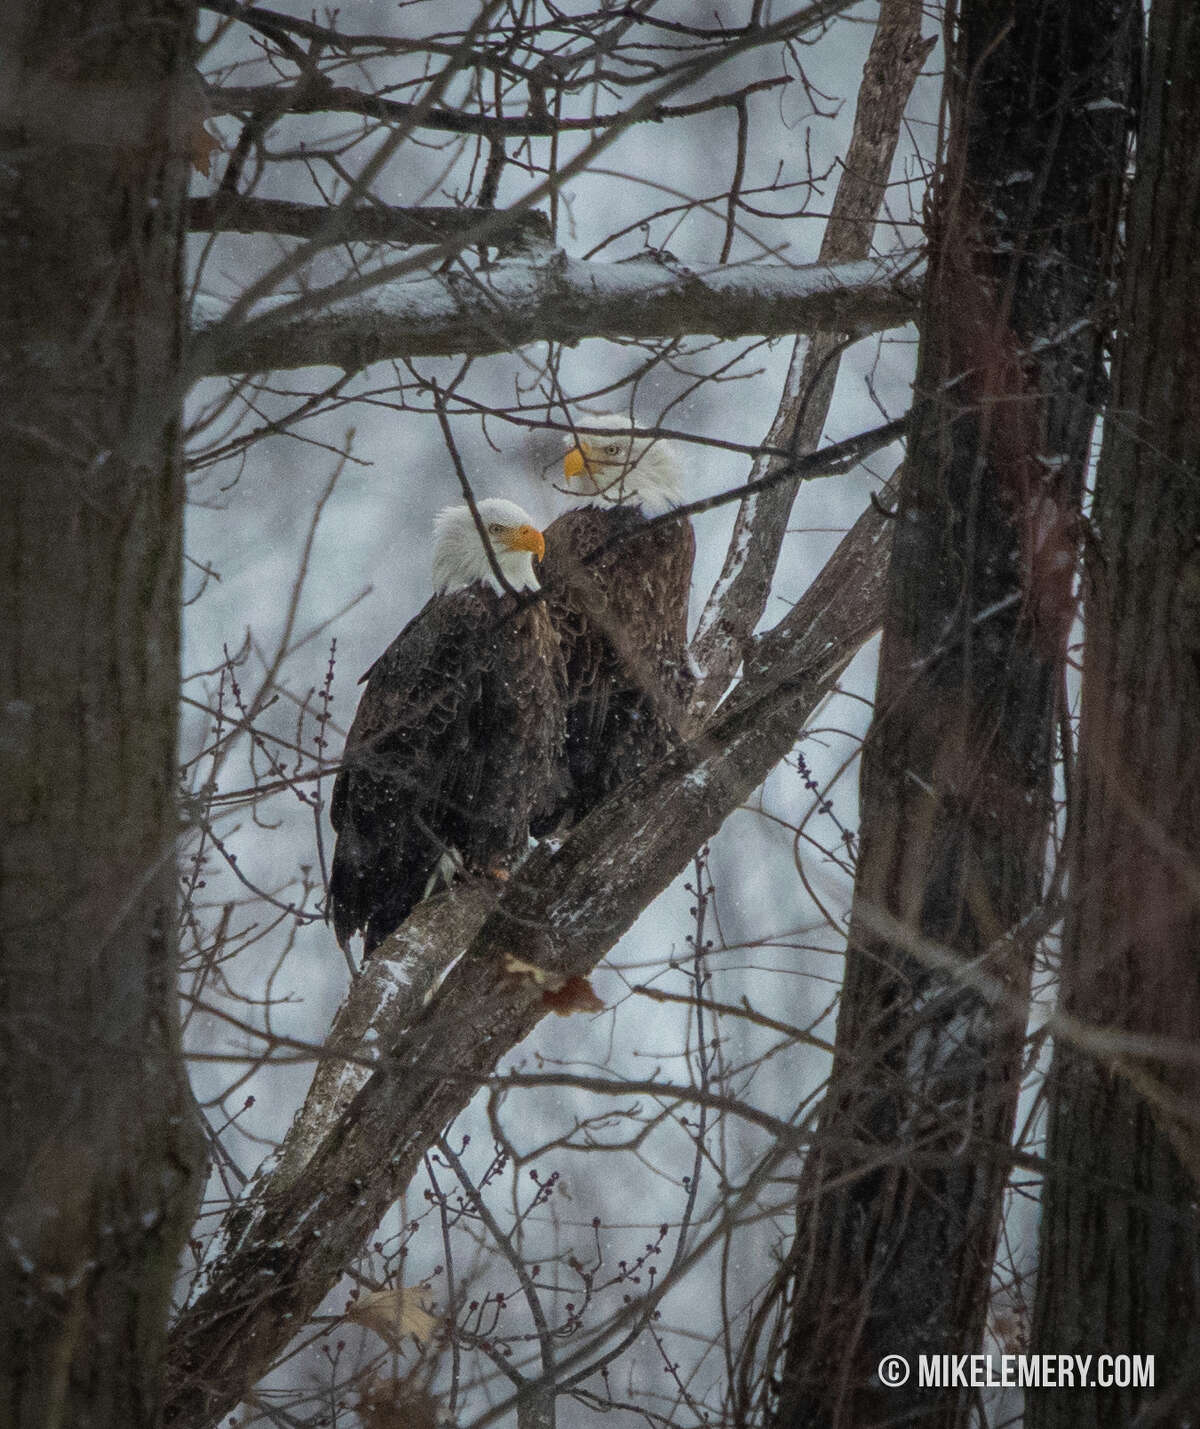 """Mike Lemery sent in an image with the note: """"Here is a mating pair of bald eagles that live in Cohoes on the Mohawk River hunkering down for the storm. Bald eagles mate for life and they have been around Cohoes for years."""" Photo submitted on Sunday, Jan. 20, 2019."""